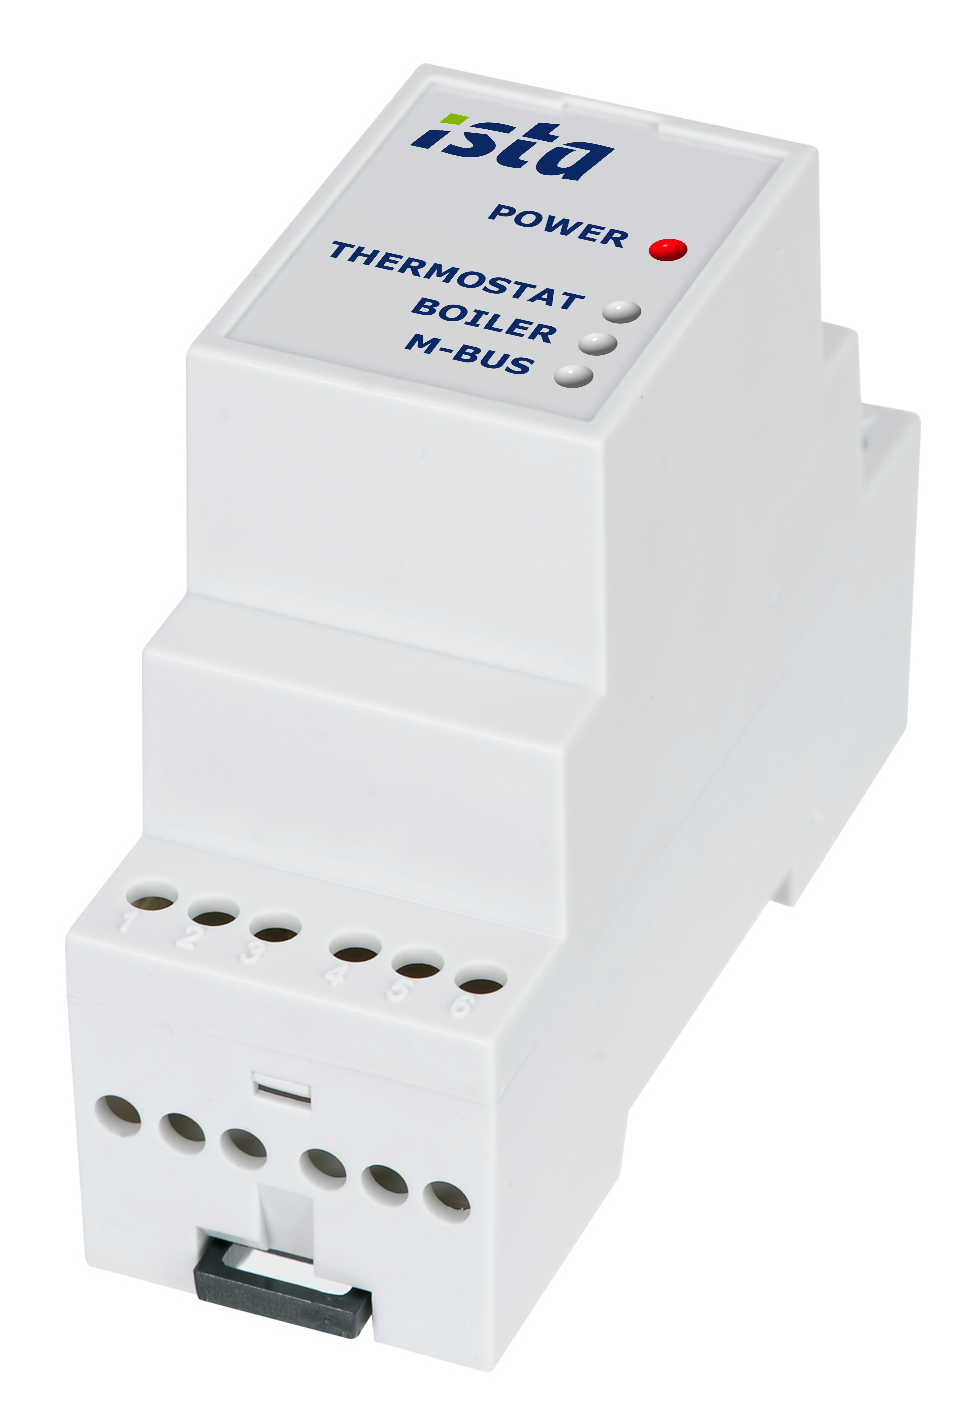 Products - Opentherm